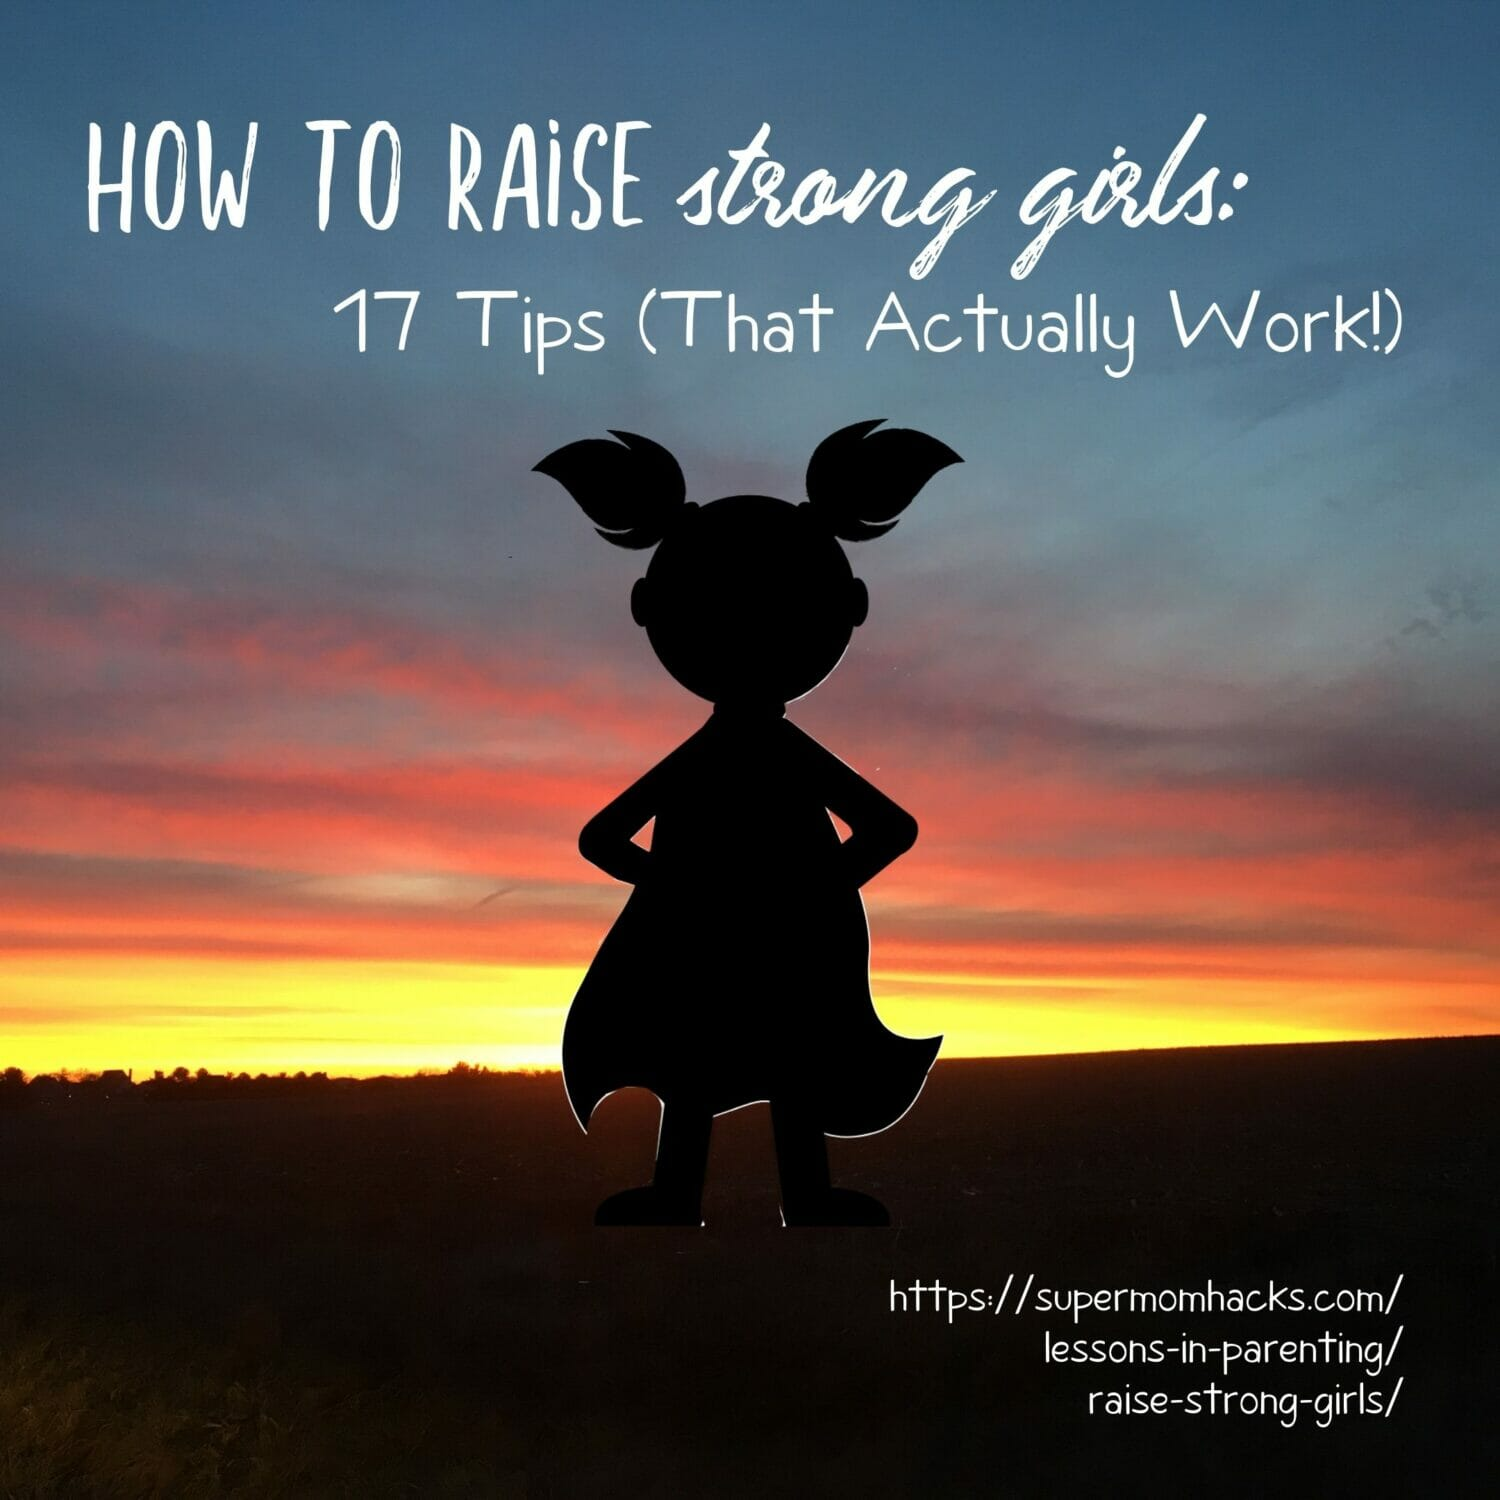 Raising a strong daughter starts early. Help your daughter learn how to be confident with these proven tips for raising strong girls.